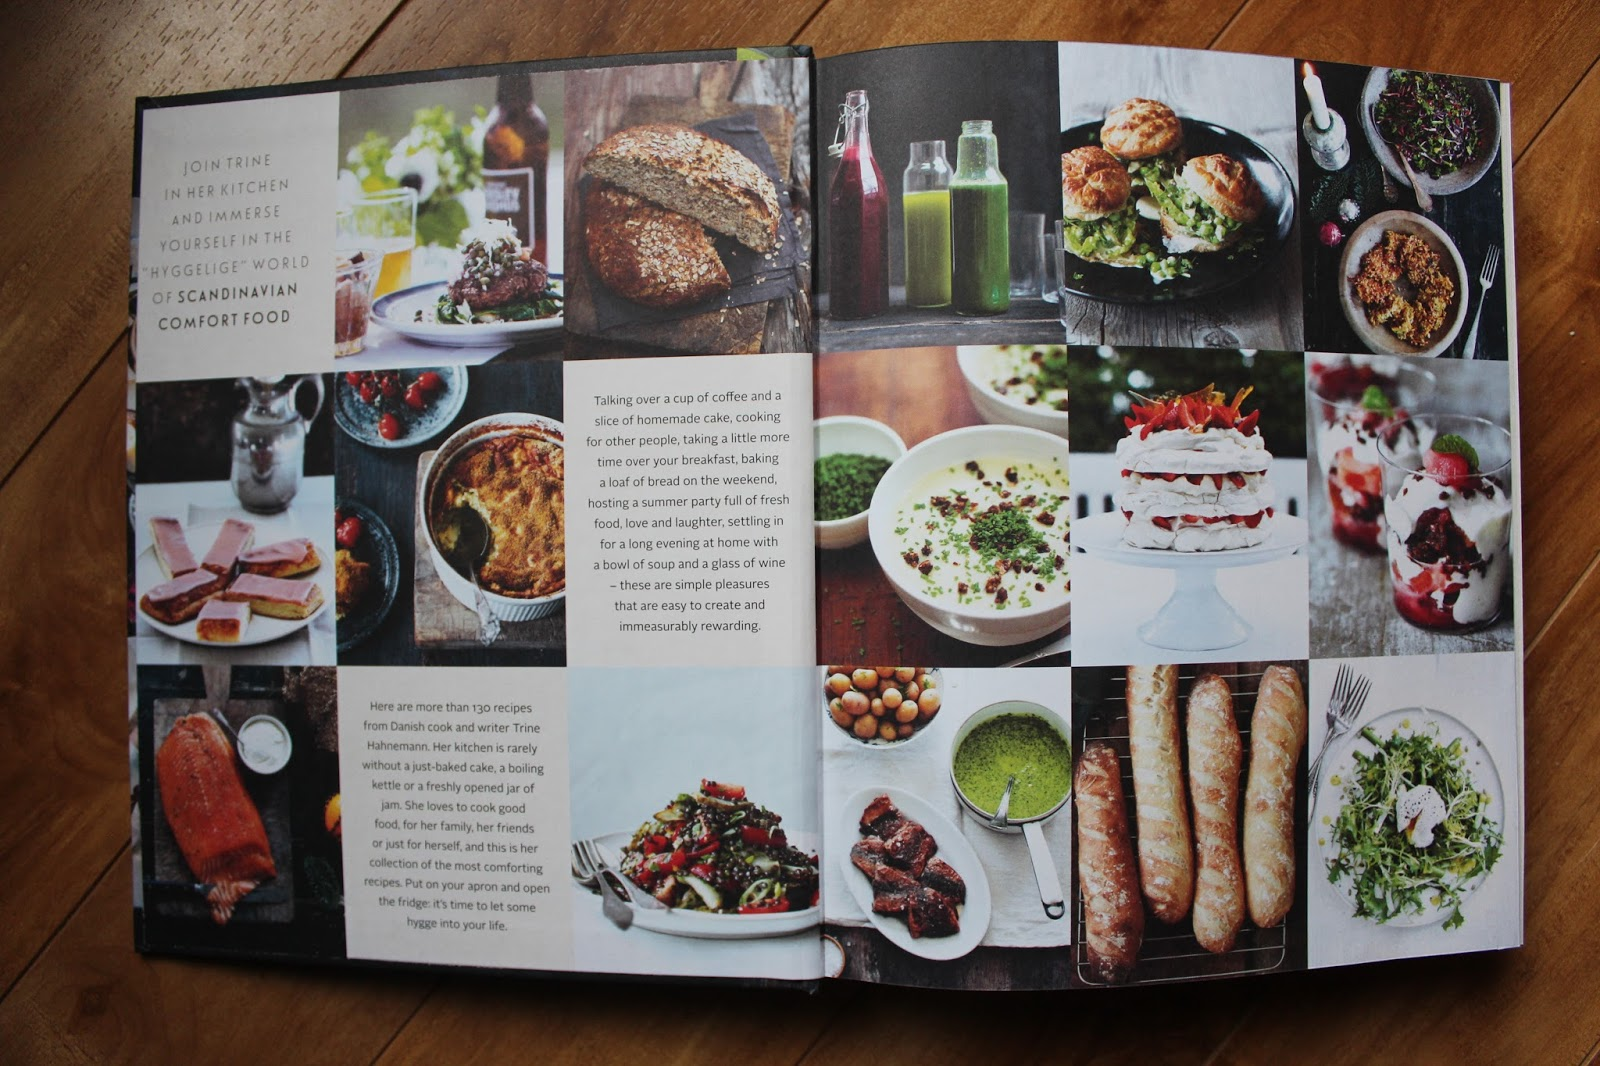 Scandinavian comfort food embracing the art of hygge book review trine hahnemann the author of scandinavian comfort food embracing the art of hygge inspires and explains in more details hygge or hyggelight is an forumfinder Image collections